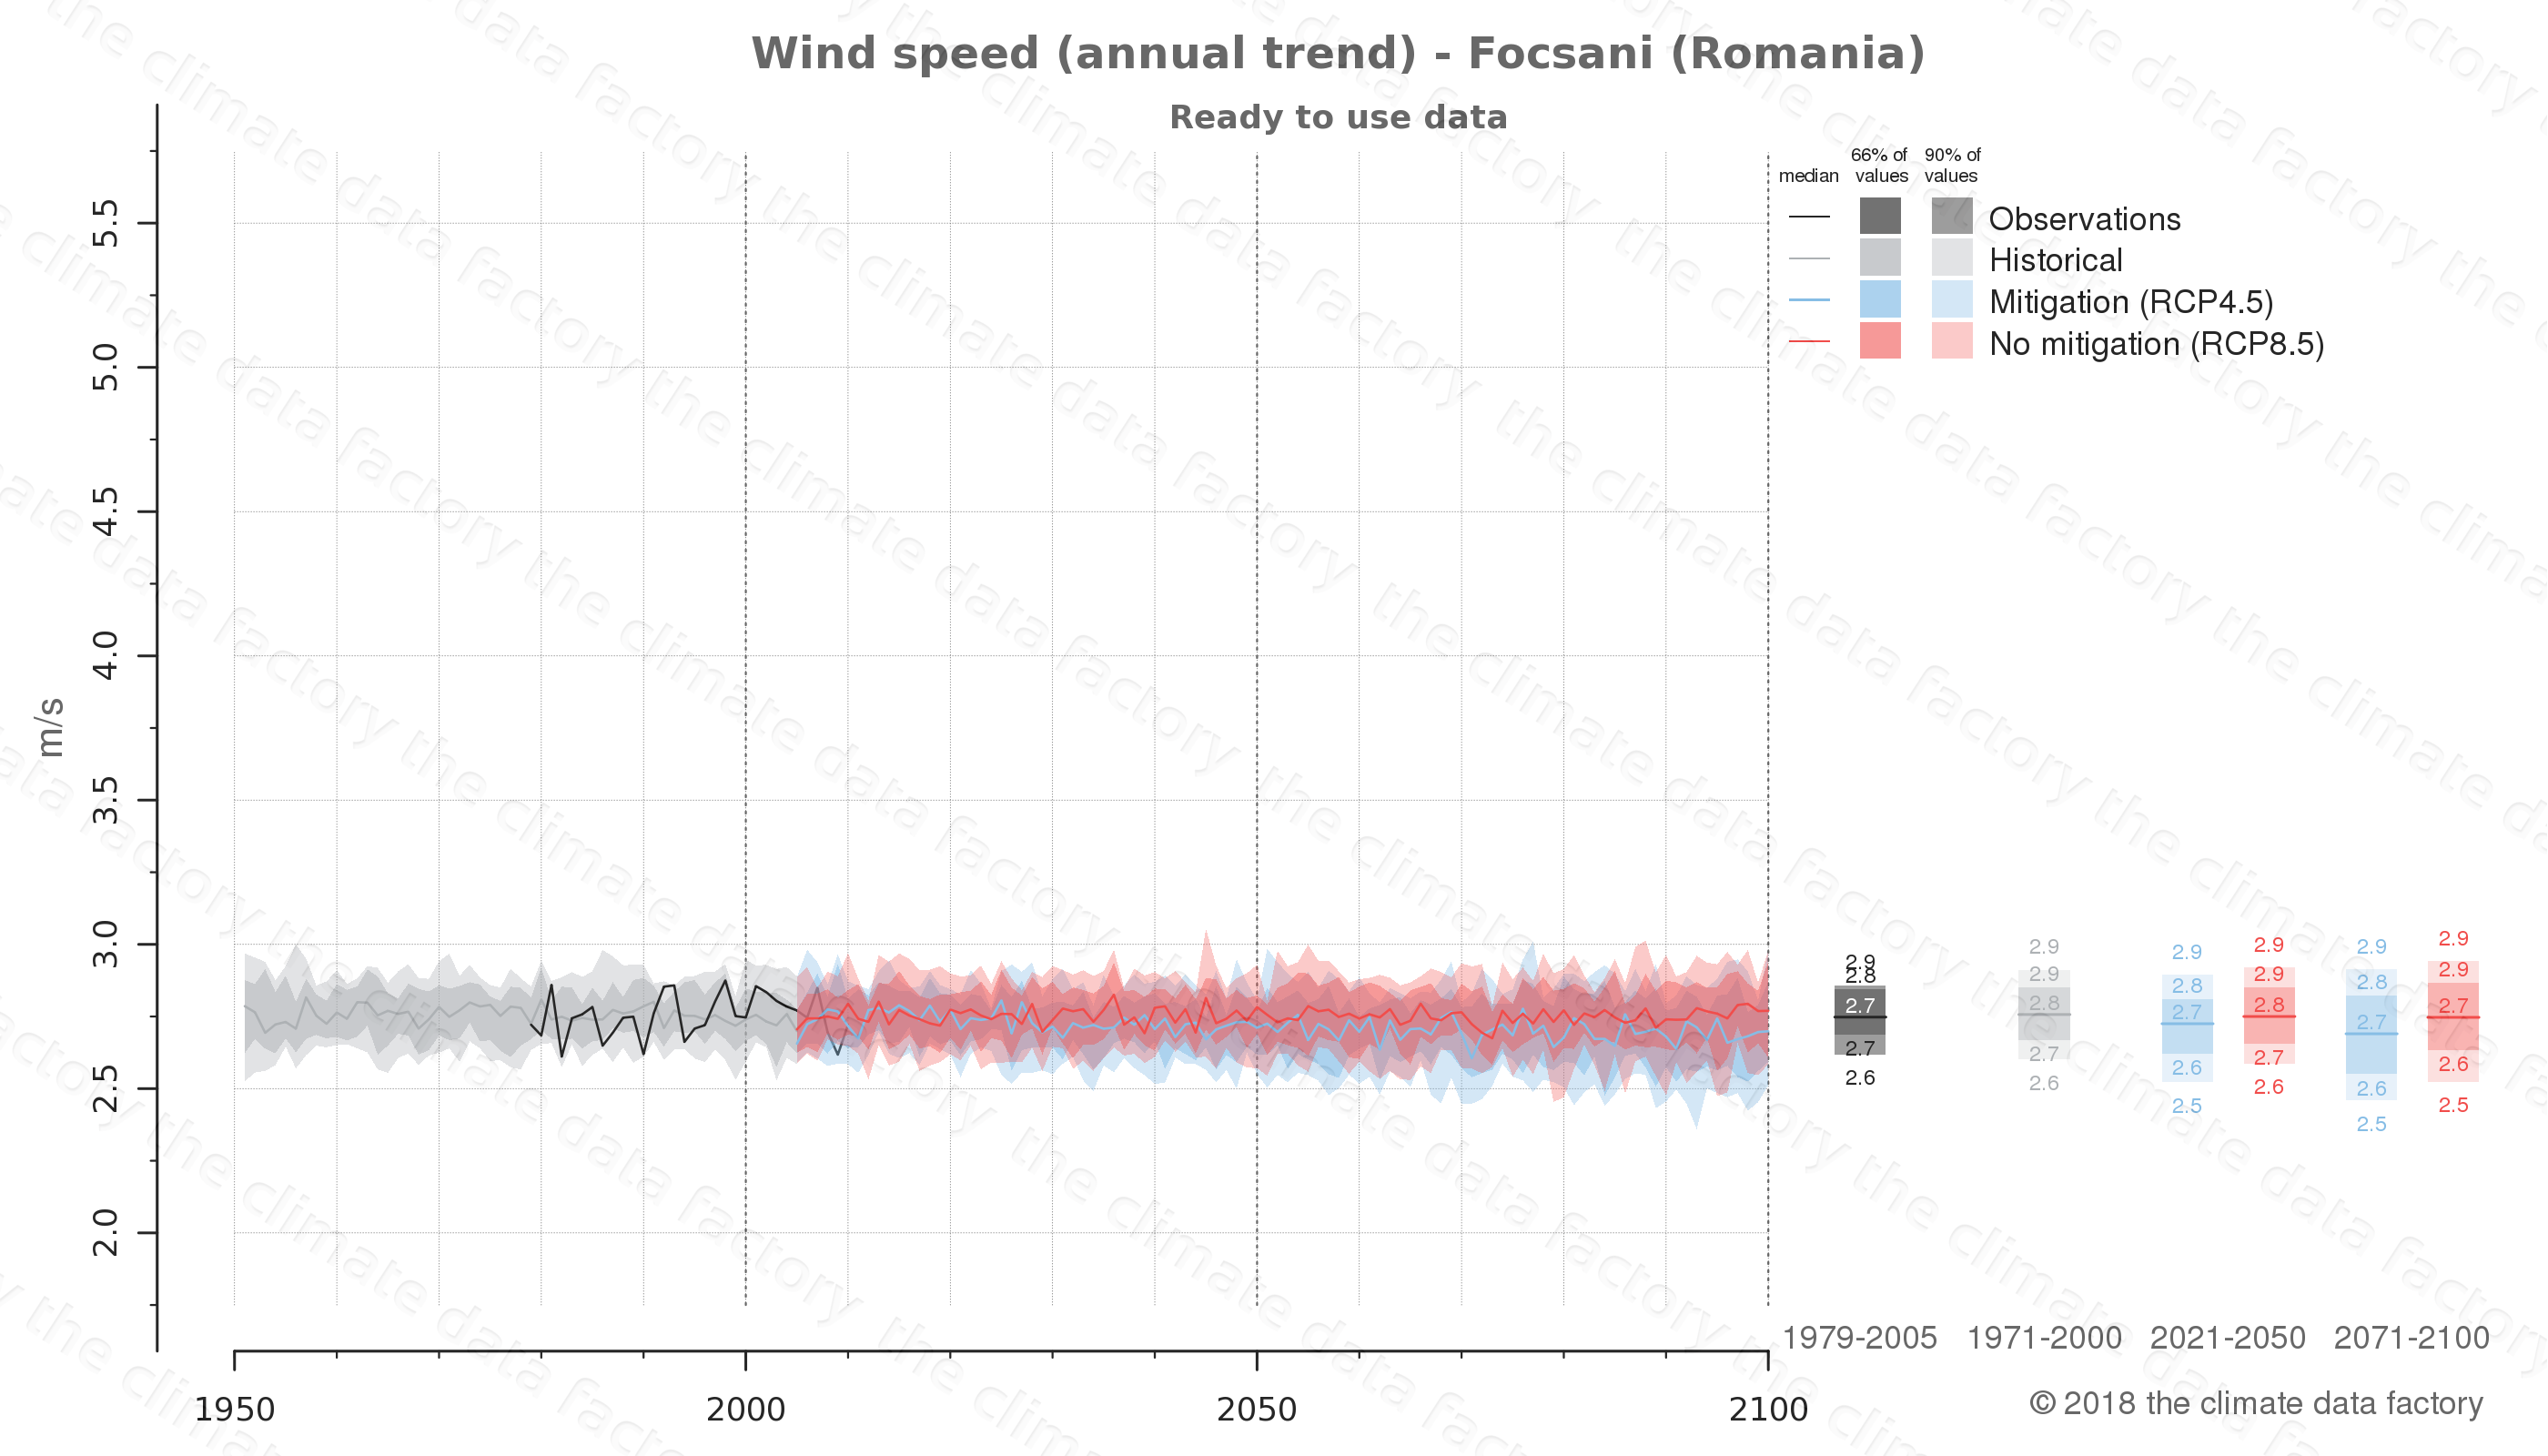 climate change data policy adaptation climate graph city data wind-speed focsani romania